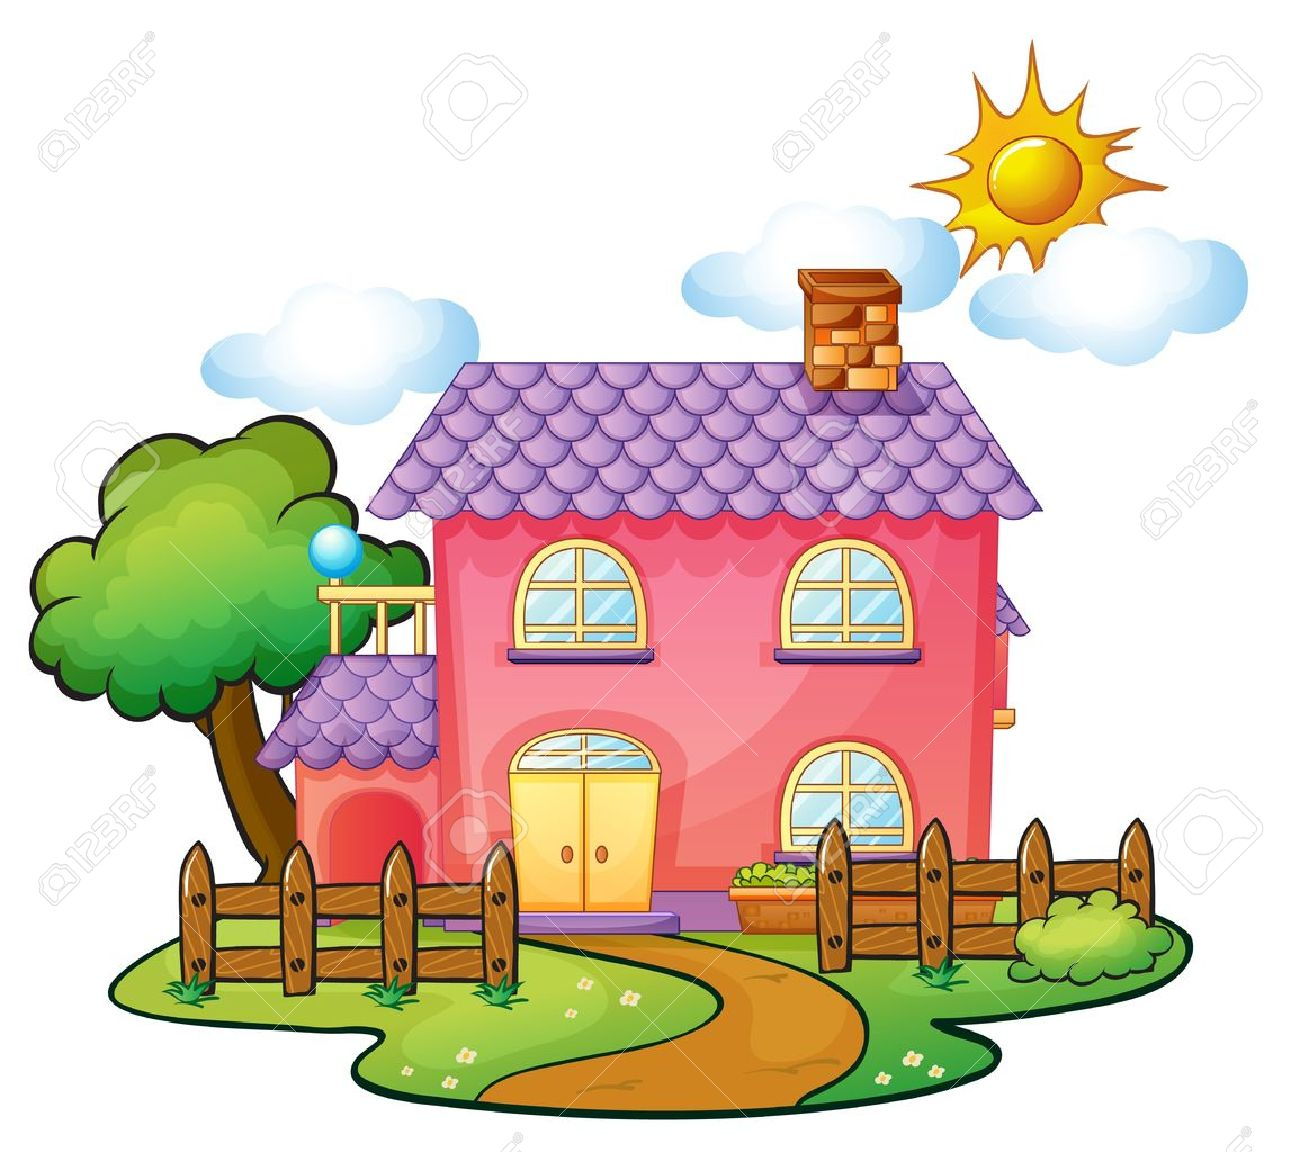 illustration of a house in a beautiful nature Stock Vector - 16283377